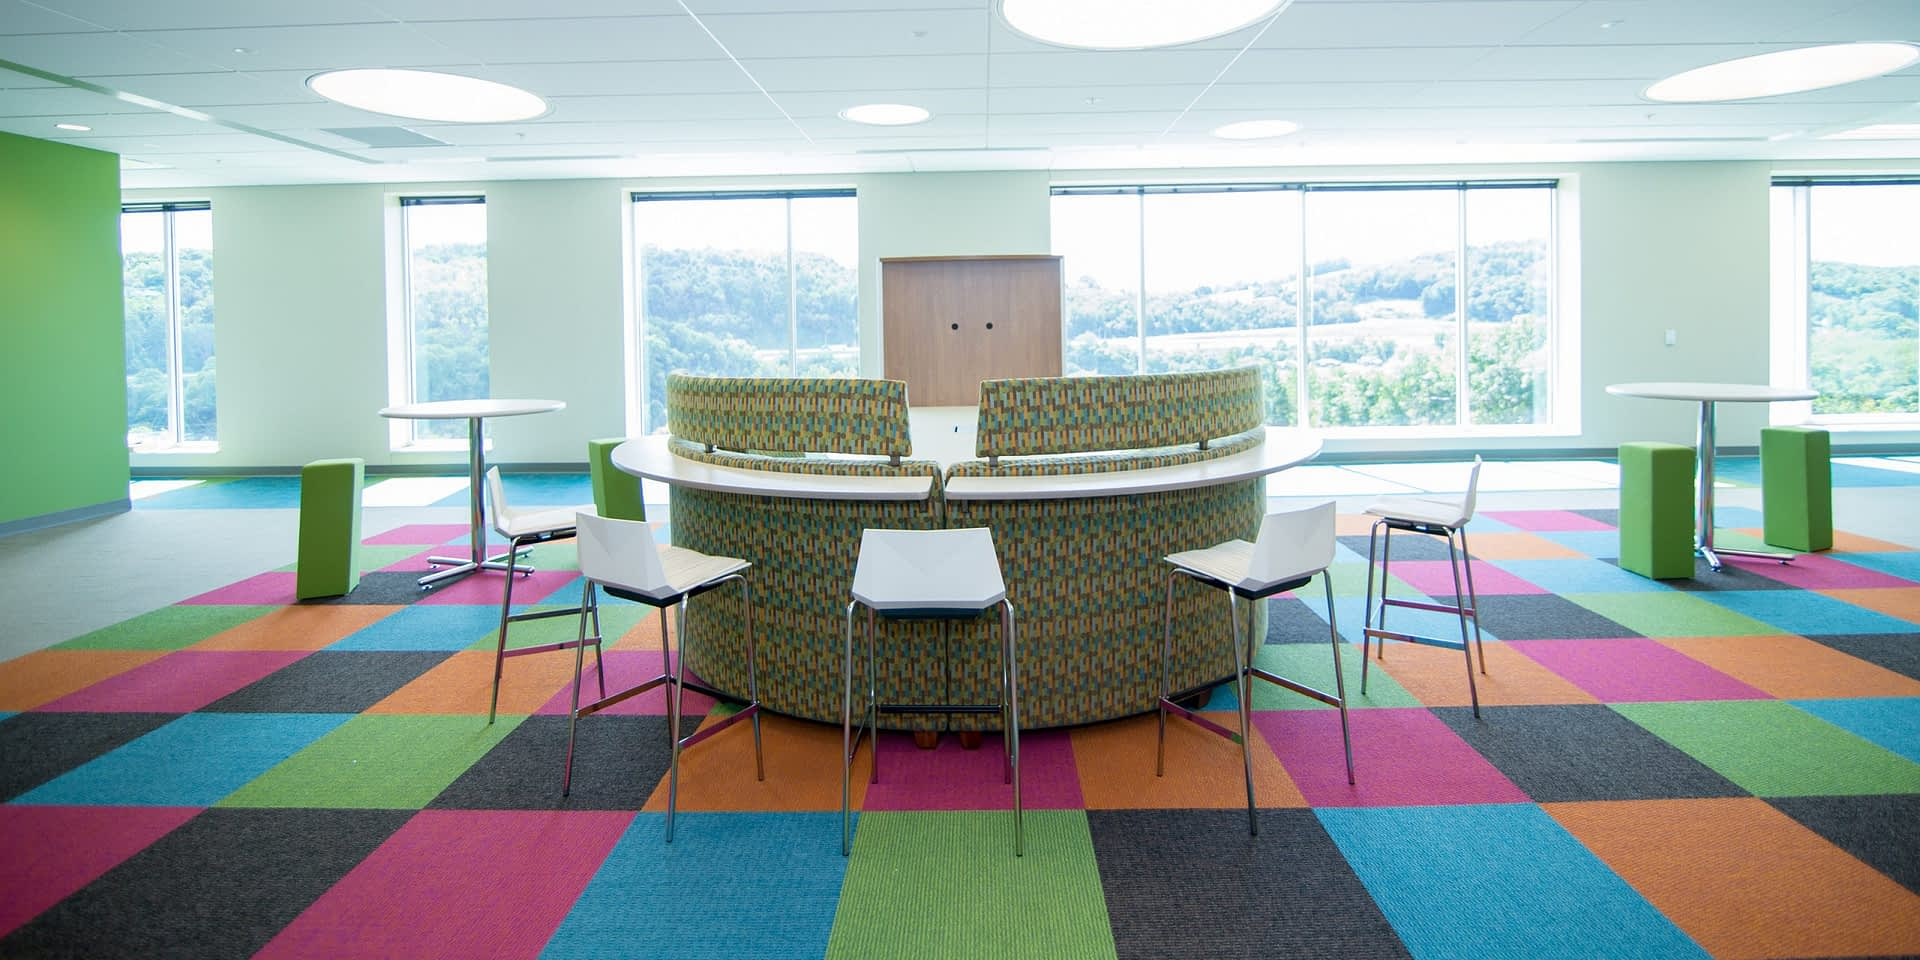 colorful collaborative office space with abstract furniture